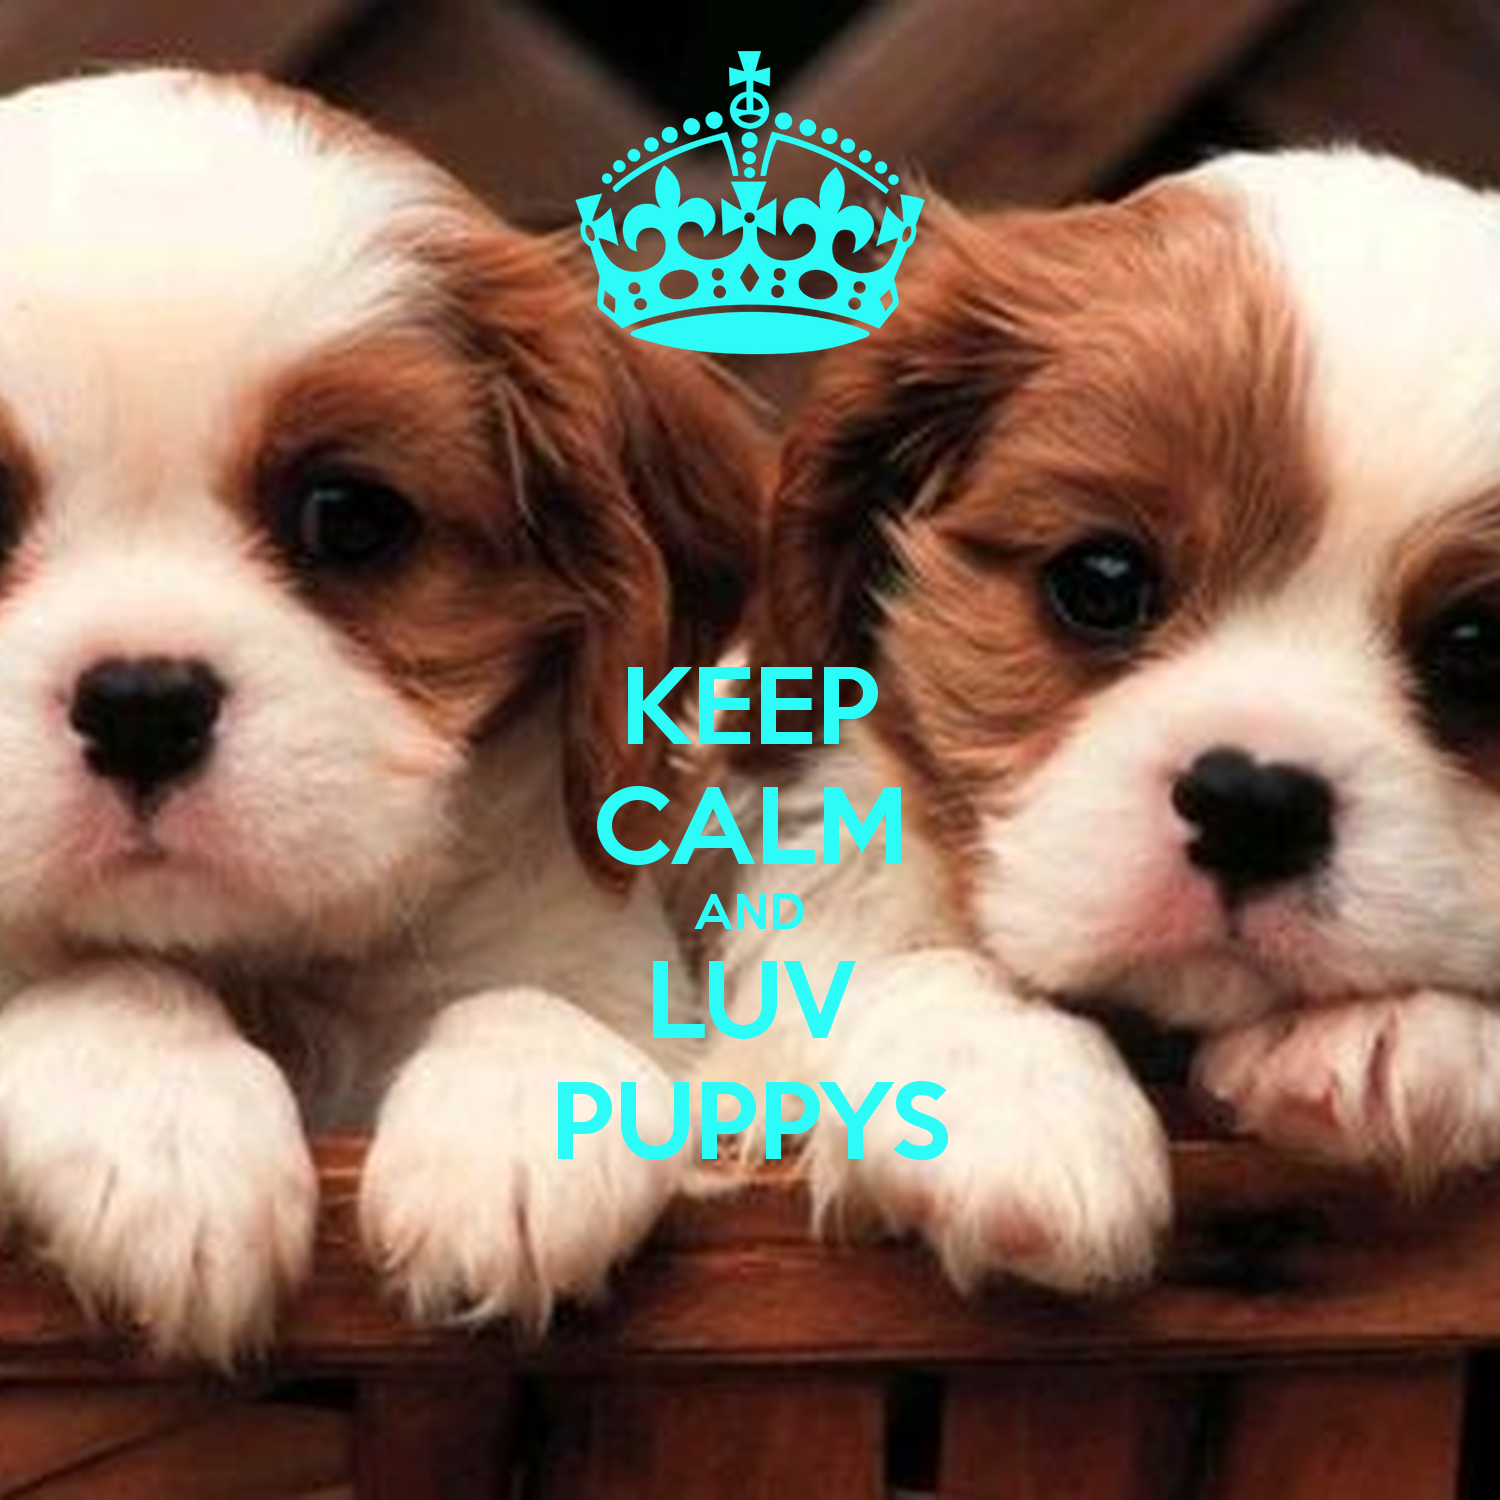 Keep calm and biohazard on keep calm and carry on image generator - Keep Calm And Luv Puppys Keep Calm And Carry On Image Generator